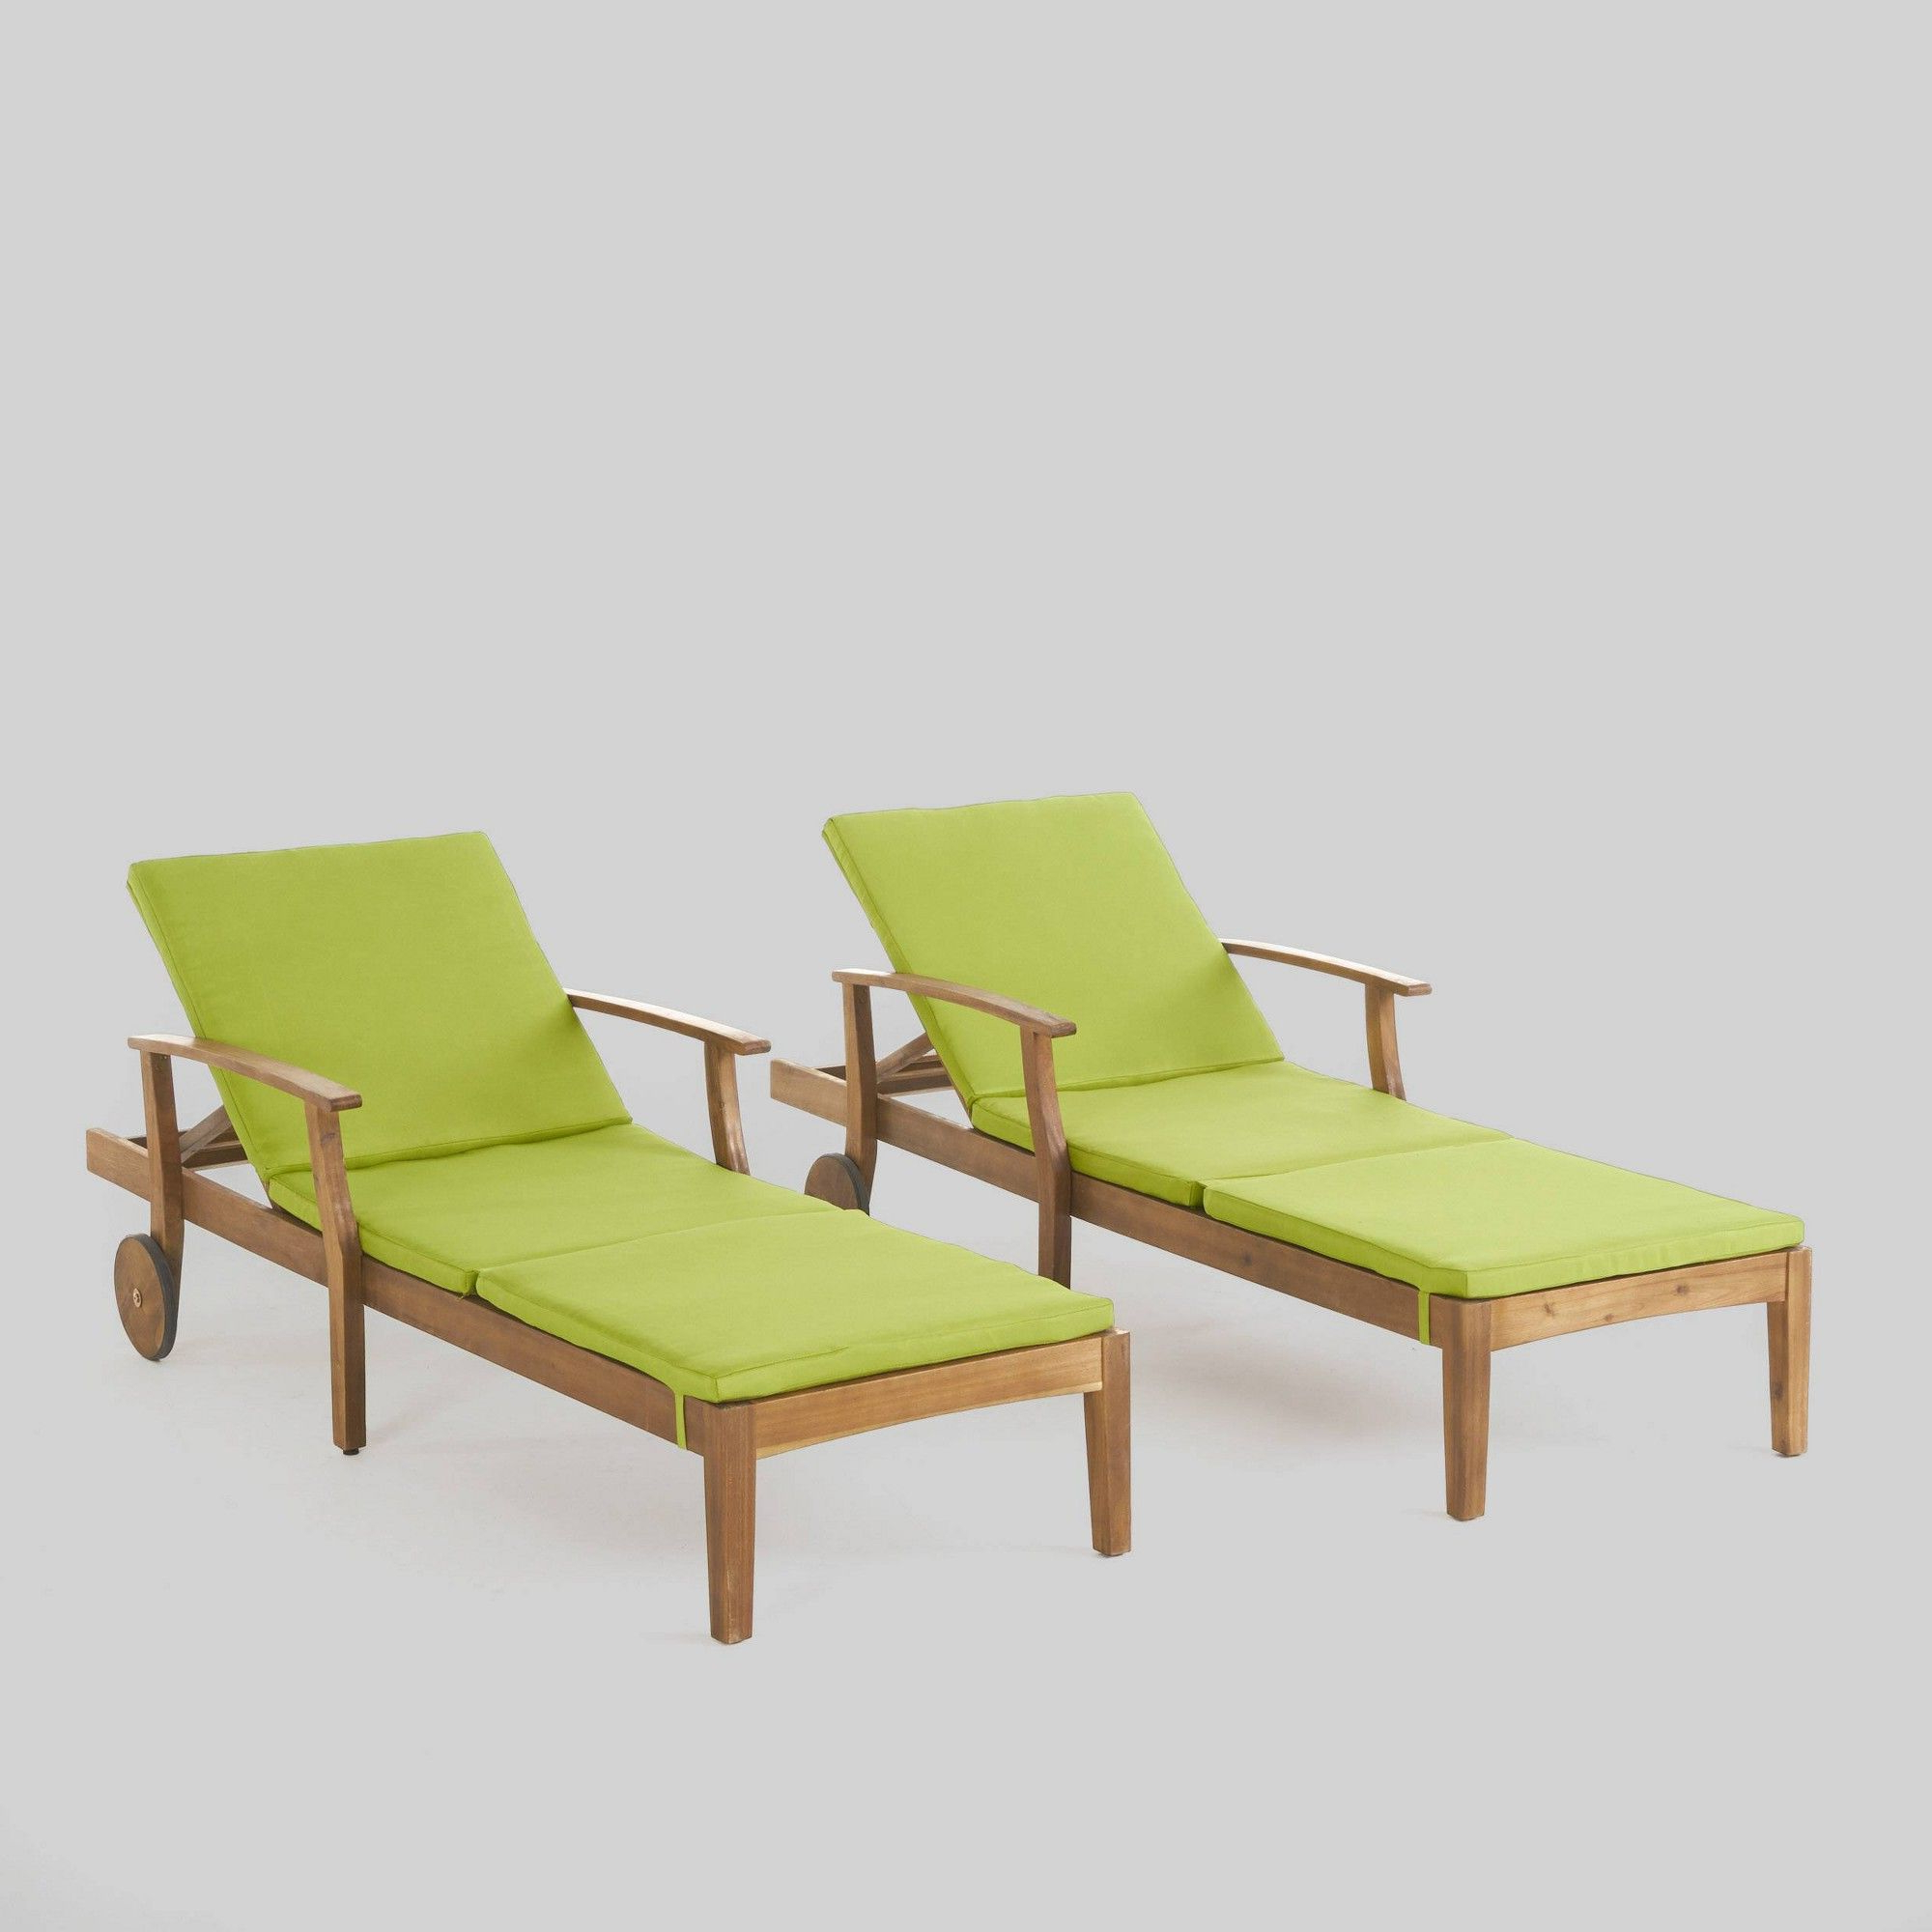 Well Known Perla Outdoor Acacia Wood Chaise Lounge With Cushion With Perla 2Pk Acacia Wood Patio Chaise Lounge – Teak/green (View 25 of 25)